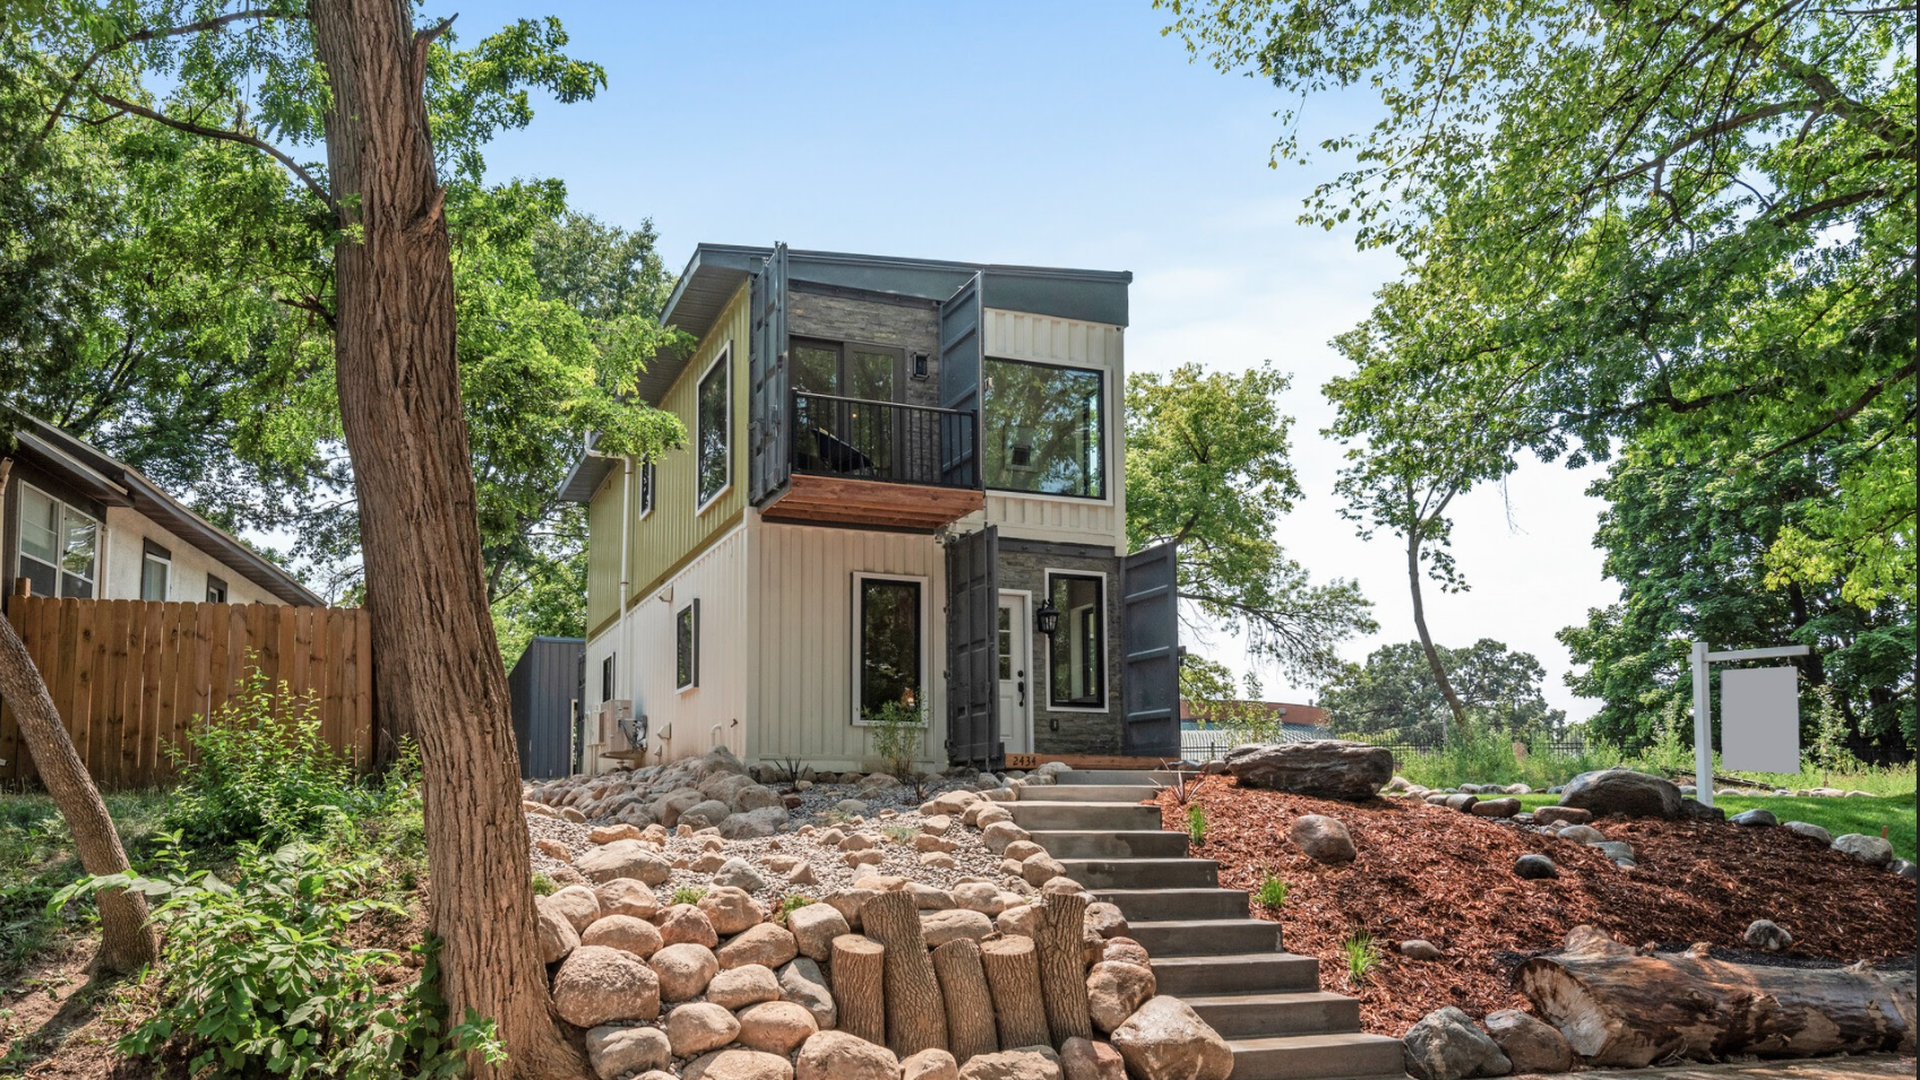 The exterior of a shipping container home for sale in Minneapolis.